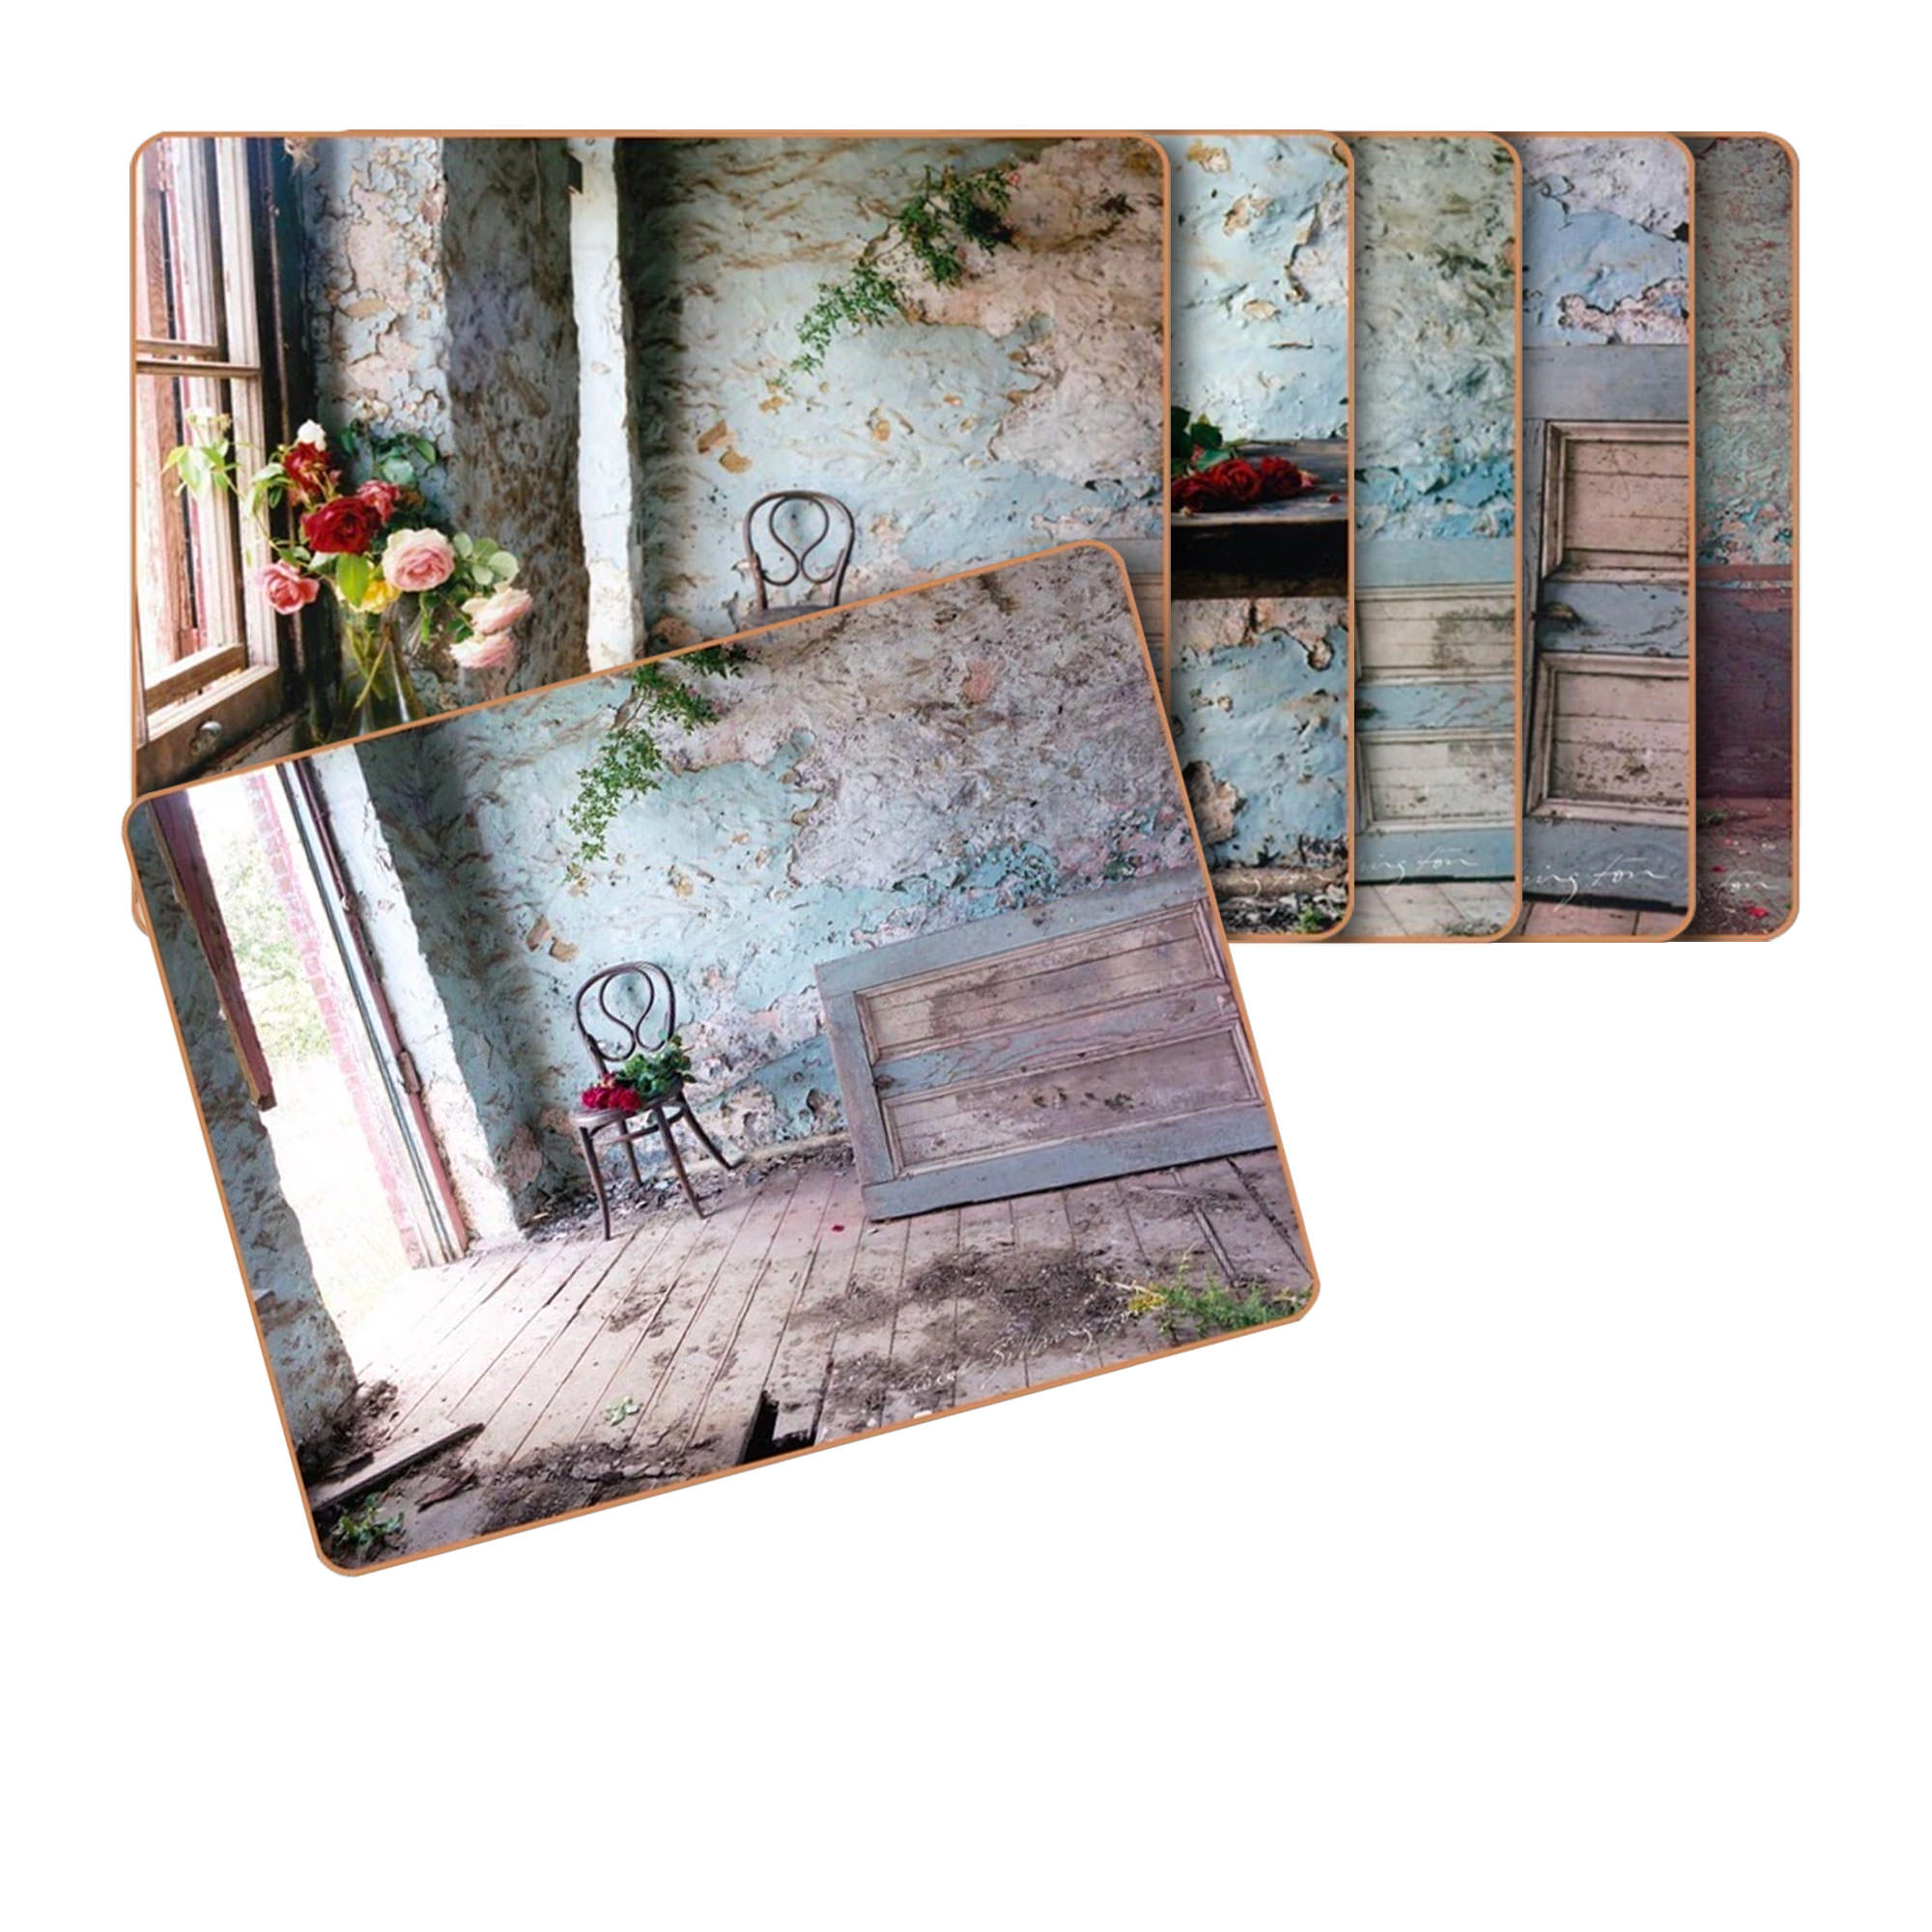 Cinnamon 6pc Blue Room Placemat Set 34x26.5cm